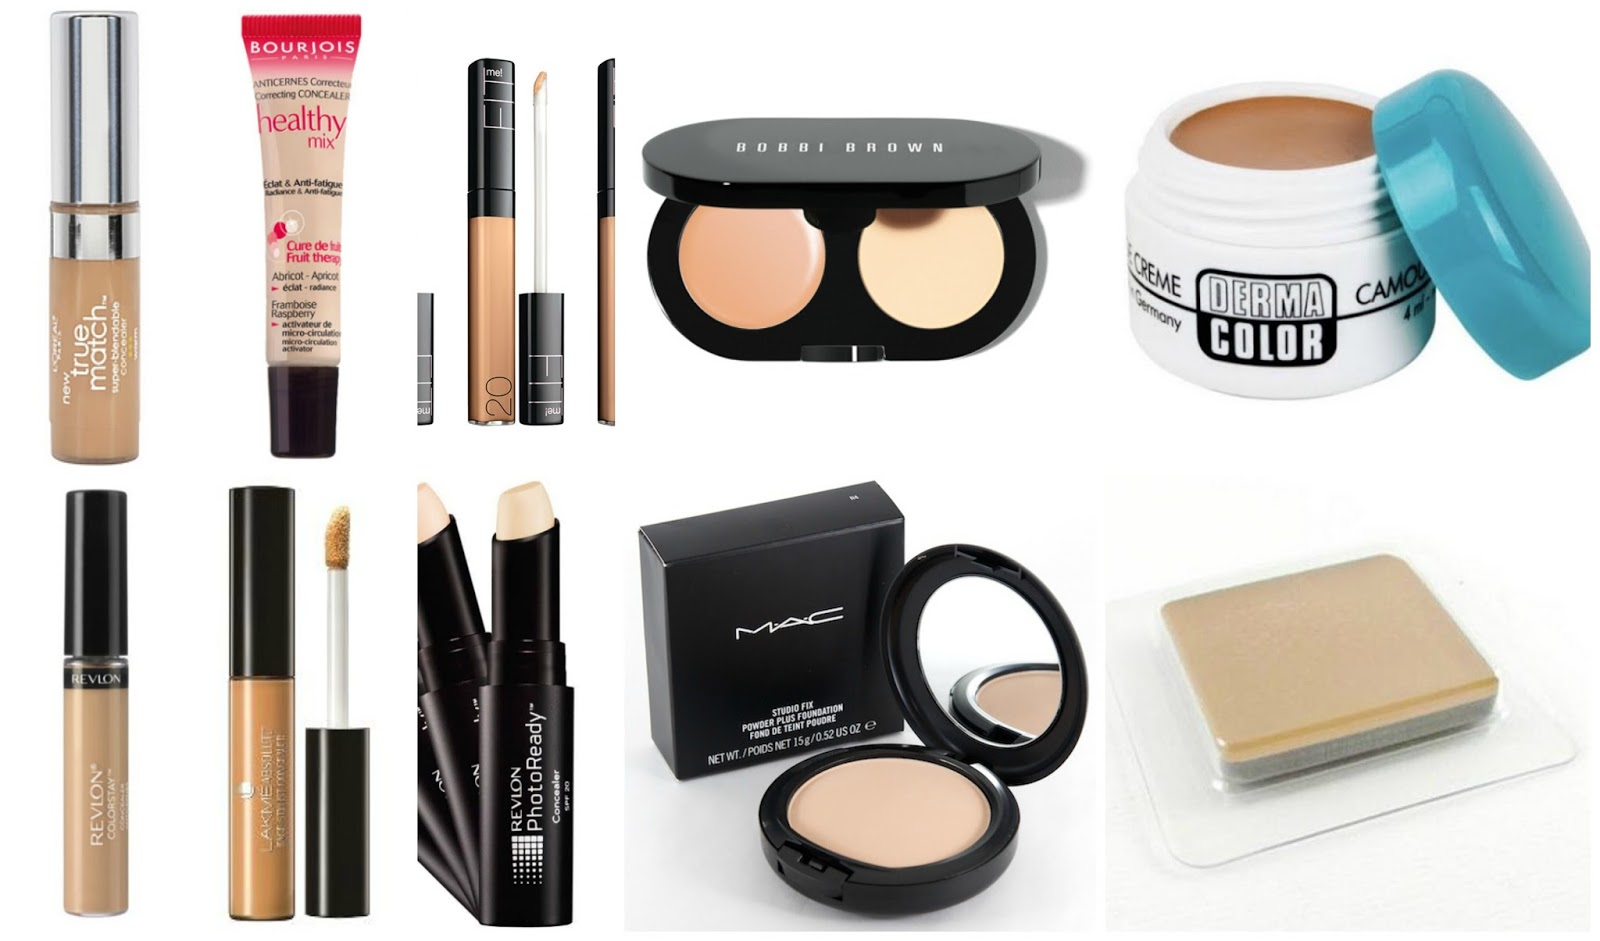 Best Makeup Products The Blond